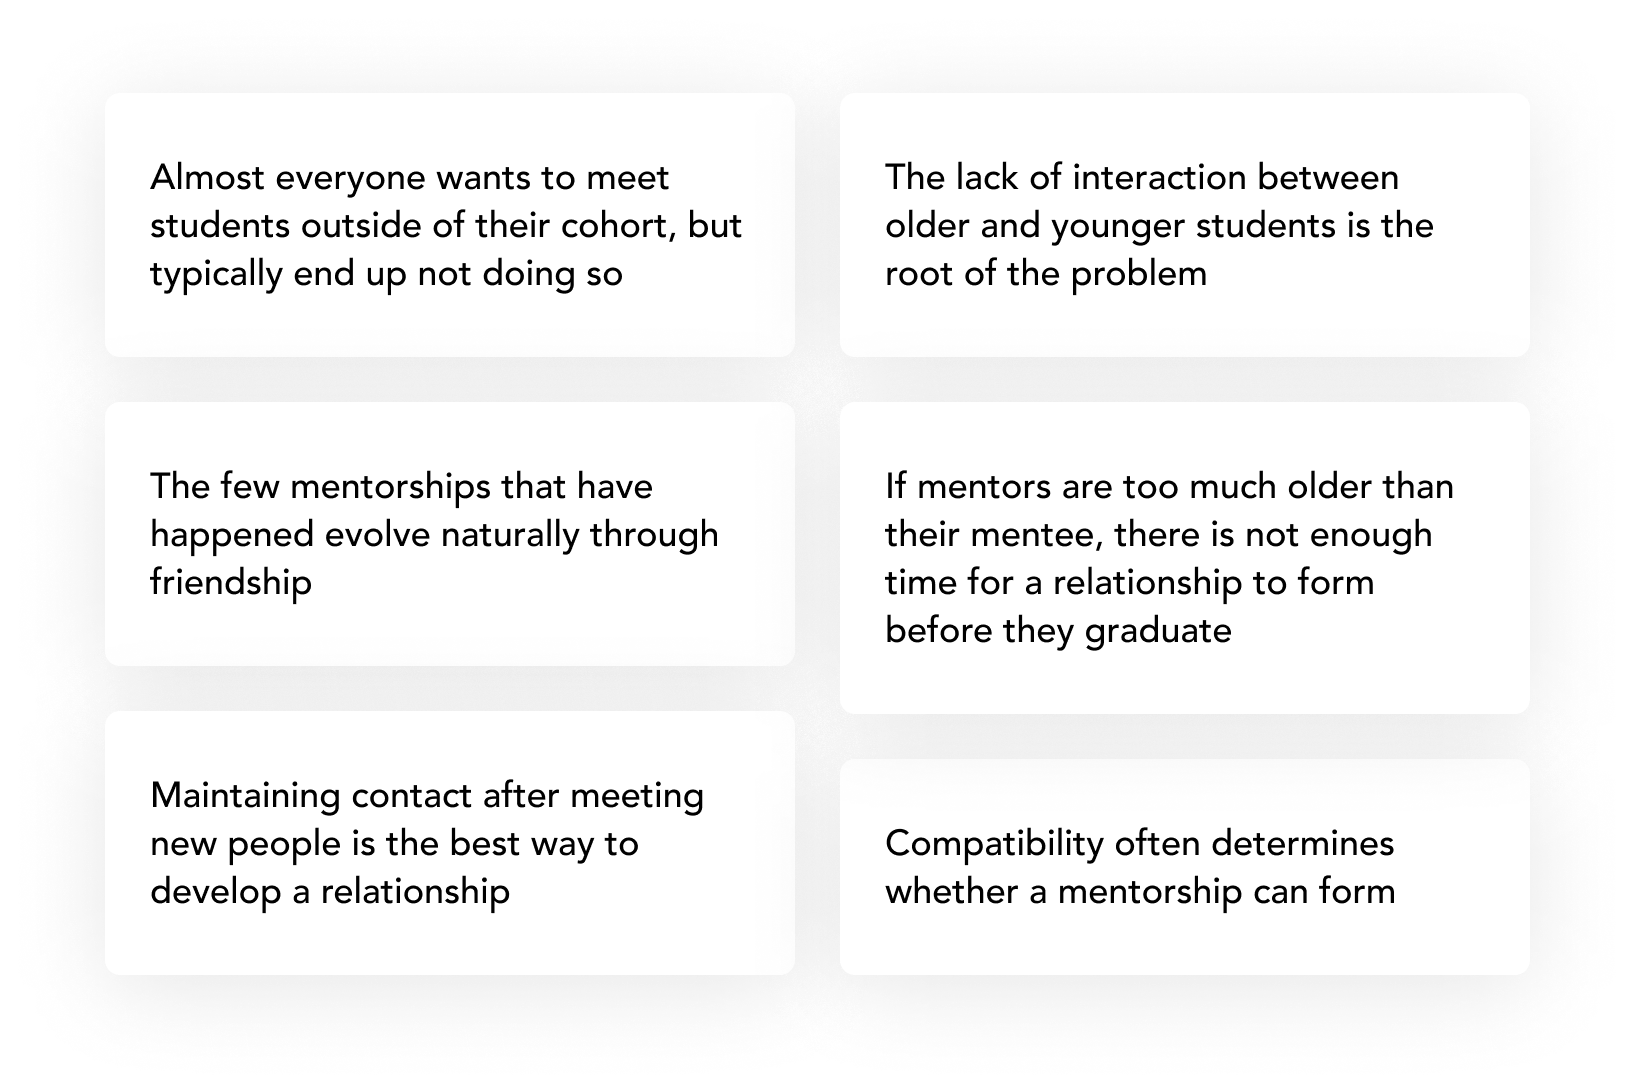 Almost everyone wants to meet students outside of their cohort, but typically end up not doing so. The few mentorships that have happened evolve naturally through friendship. Maintaining contact after meeting new people is the best way to develop a relationship. The lack of interaction between older and younger students is the root of the problem. If mentors are too much older than their mentee, there is not enough time for a relationship to form before they graduate. Compatibility often determines whether a mentorship can form.